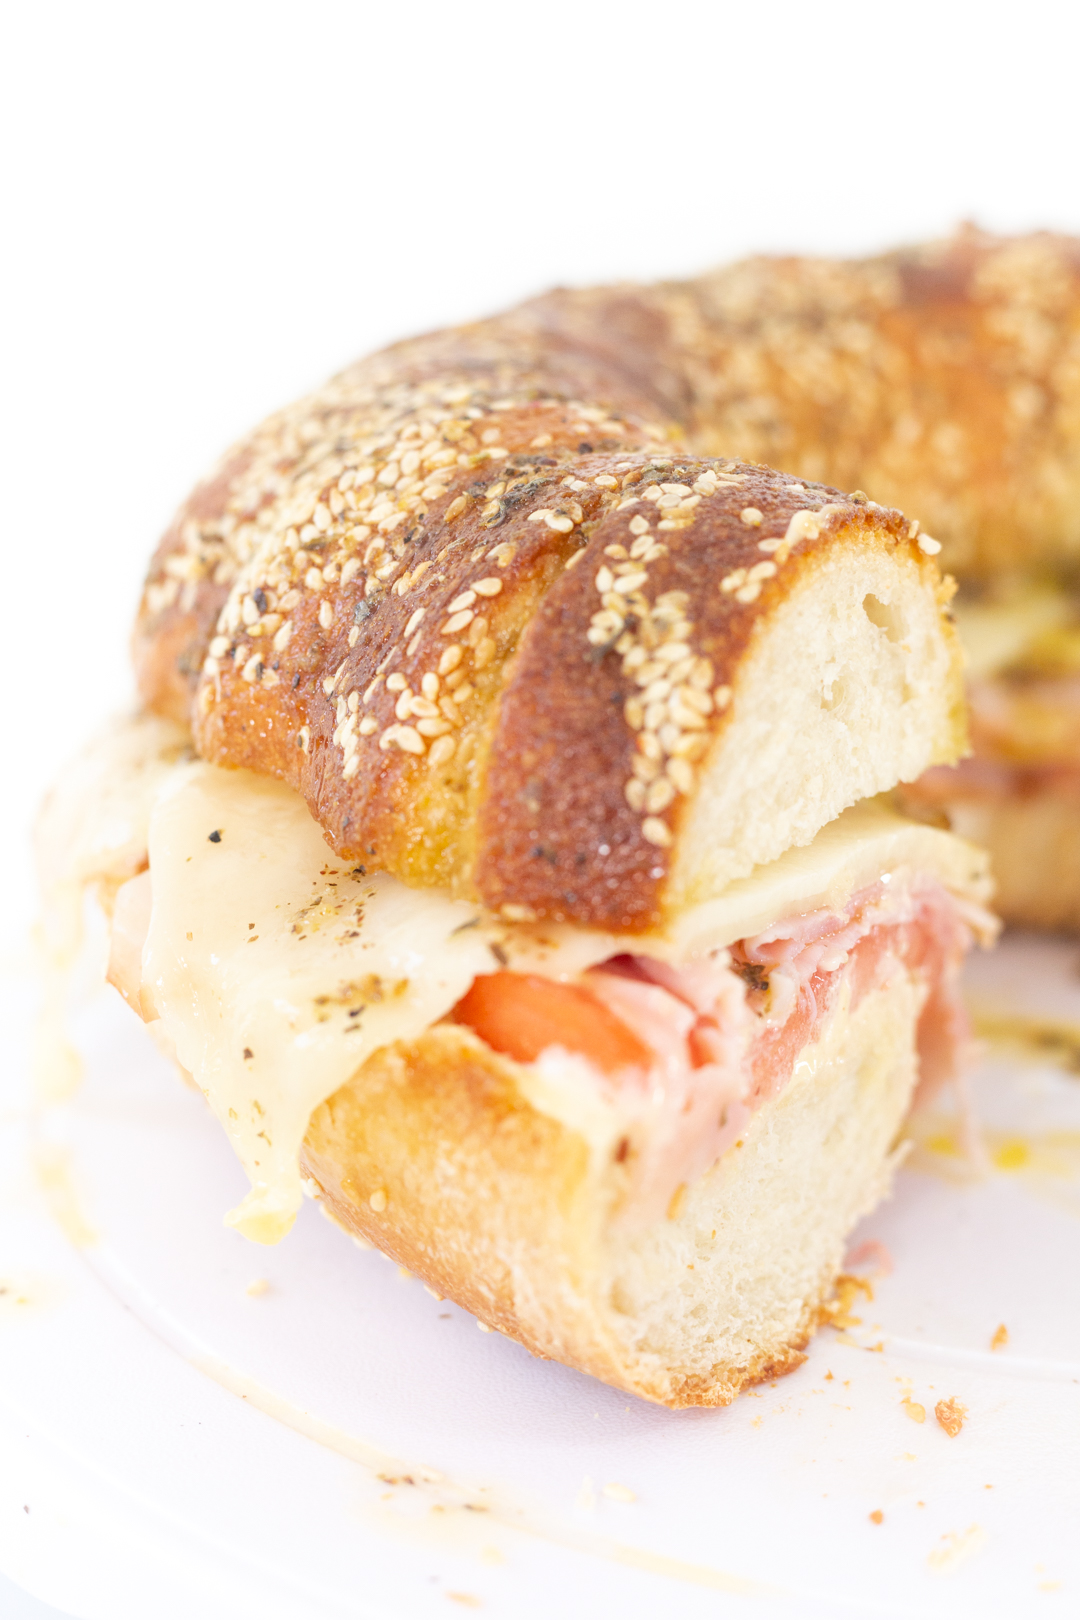 giant sandwich with sesame seed loaf filled with melty cheese.